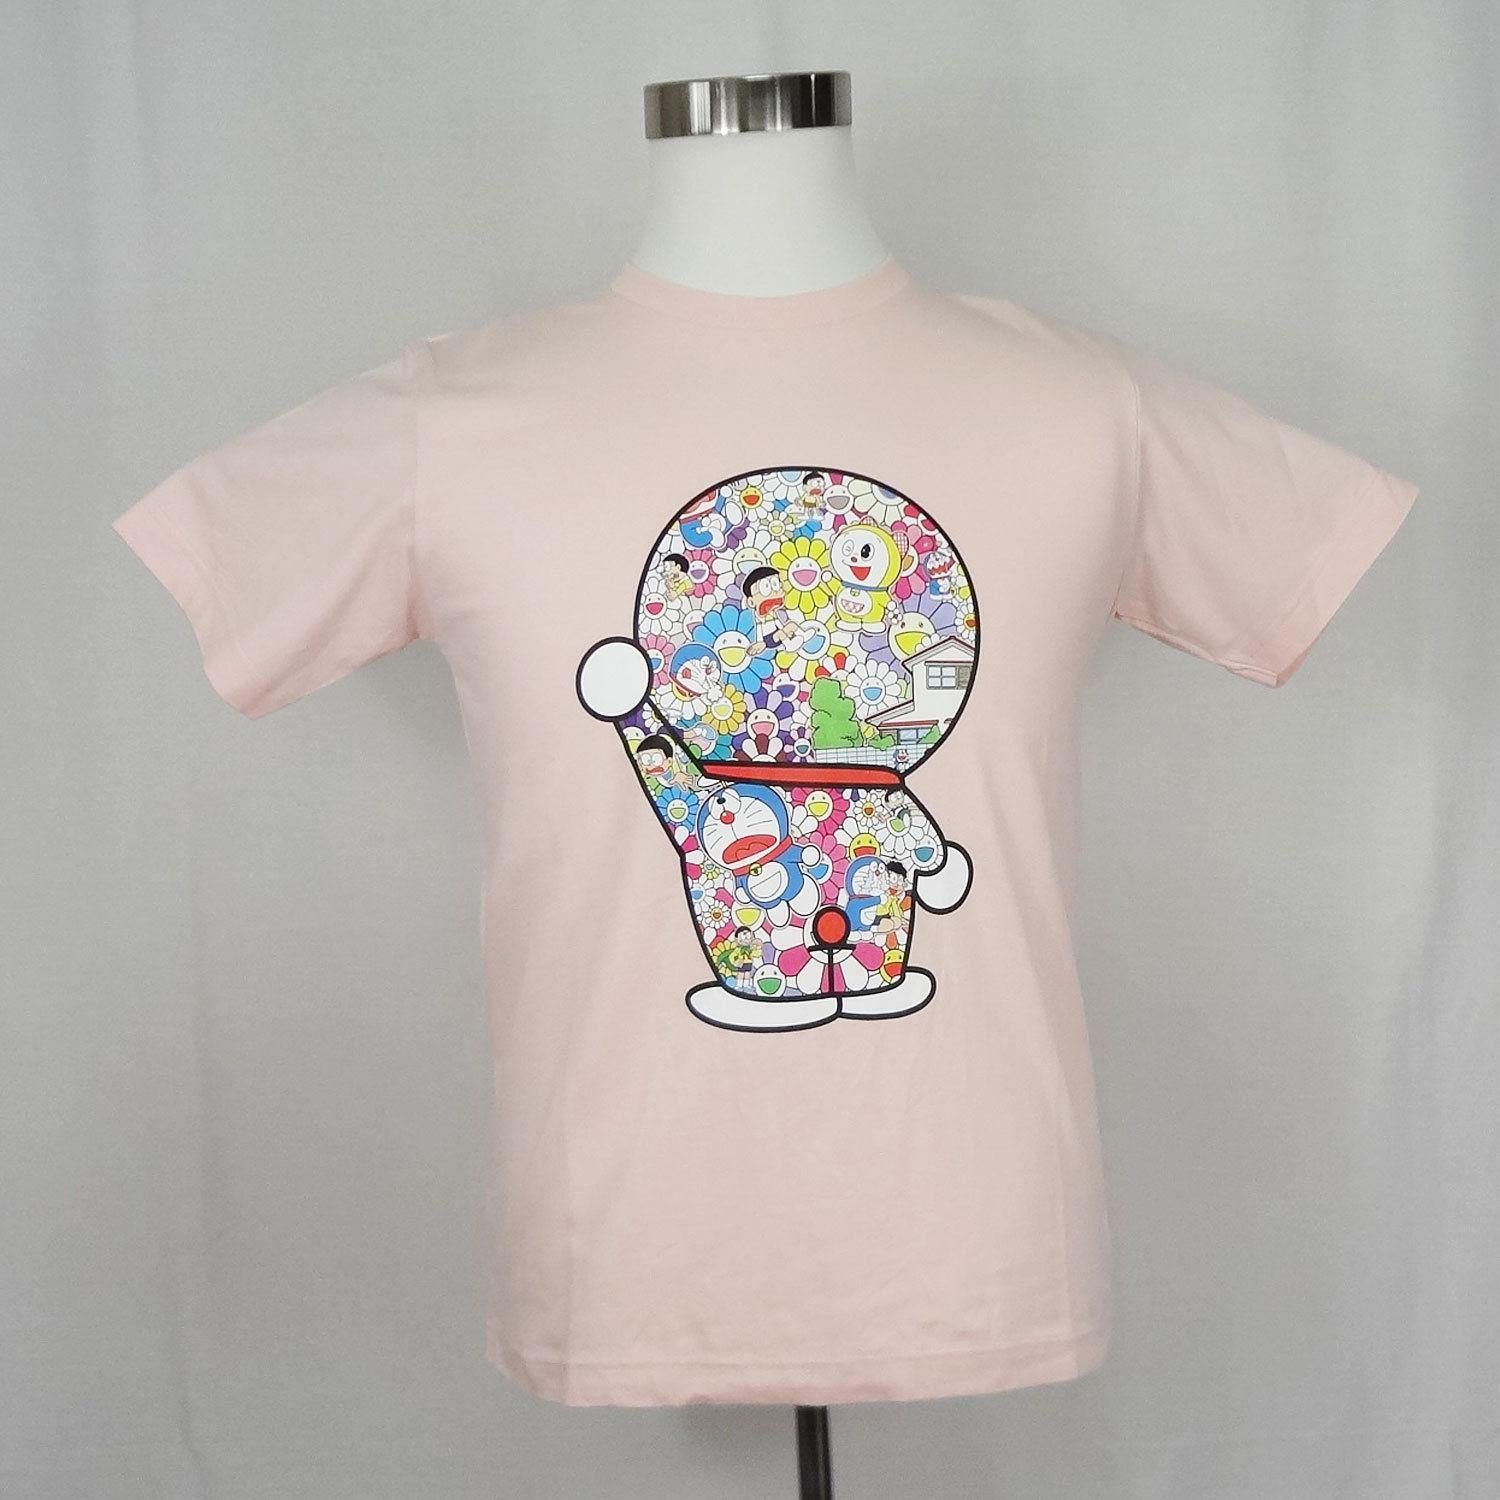 b8812bde Doraemon × Takashi Murakami UT UNIQLO Graphic T Shirt Japan S/M/L/XL Funny  Unisex Casual Tee Gift Shirts With Designs R Shirt From Fat_dad, $12.96|  DHgate.